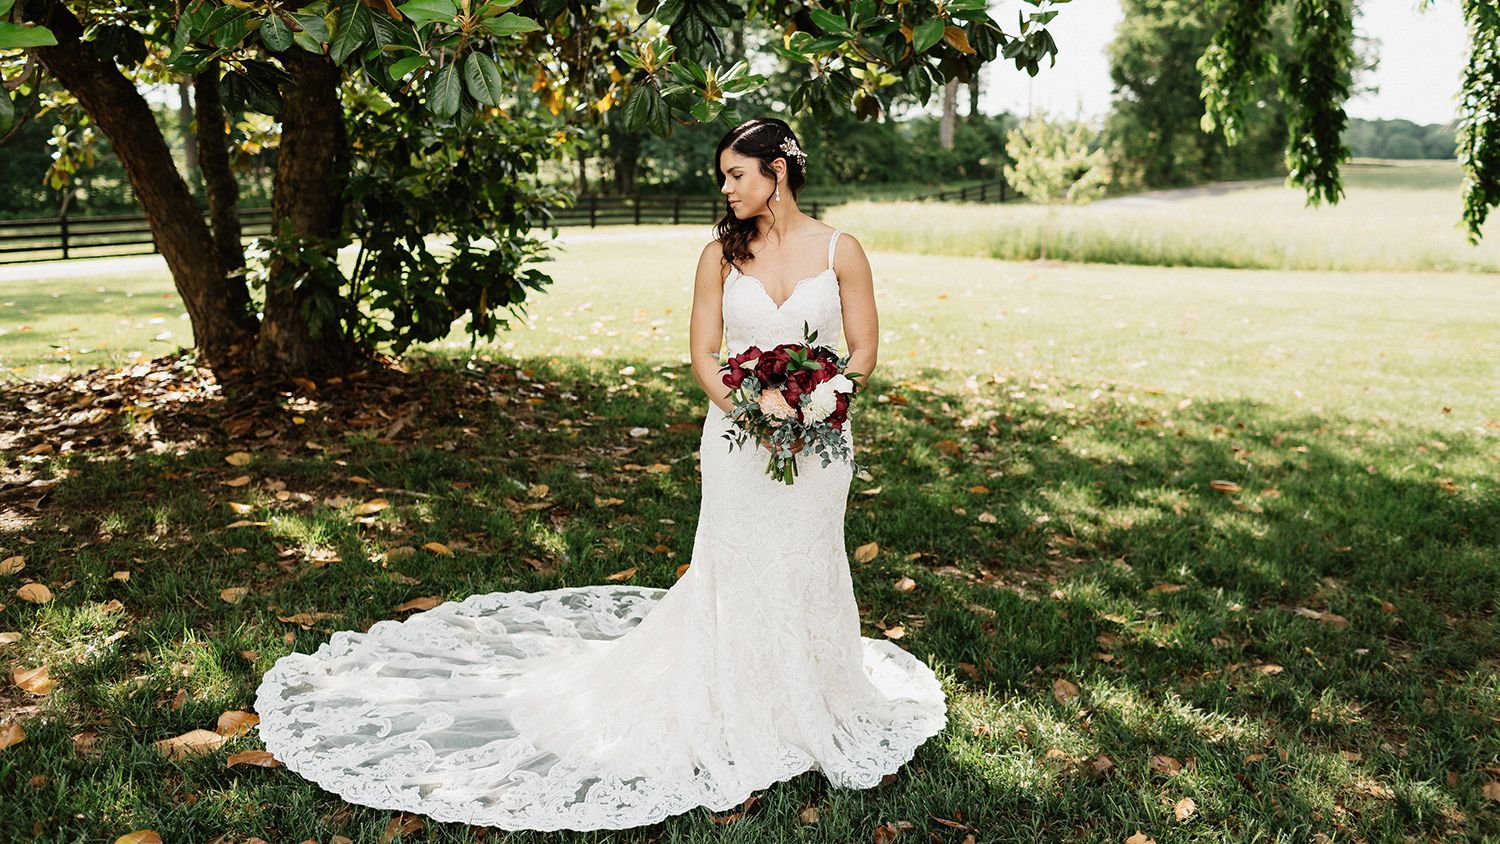 Bride Holding Flowers Under Magnolia Tree